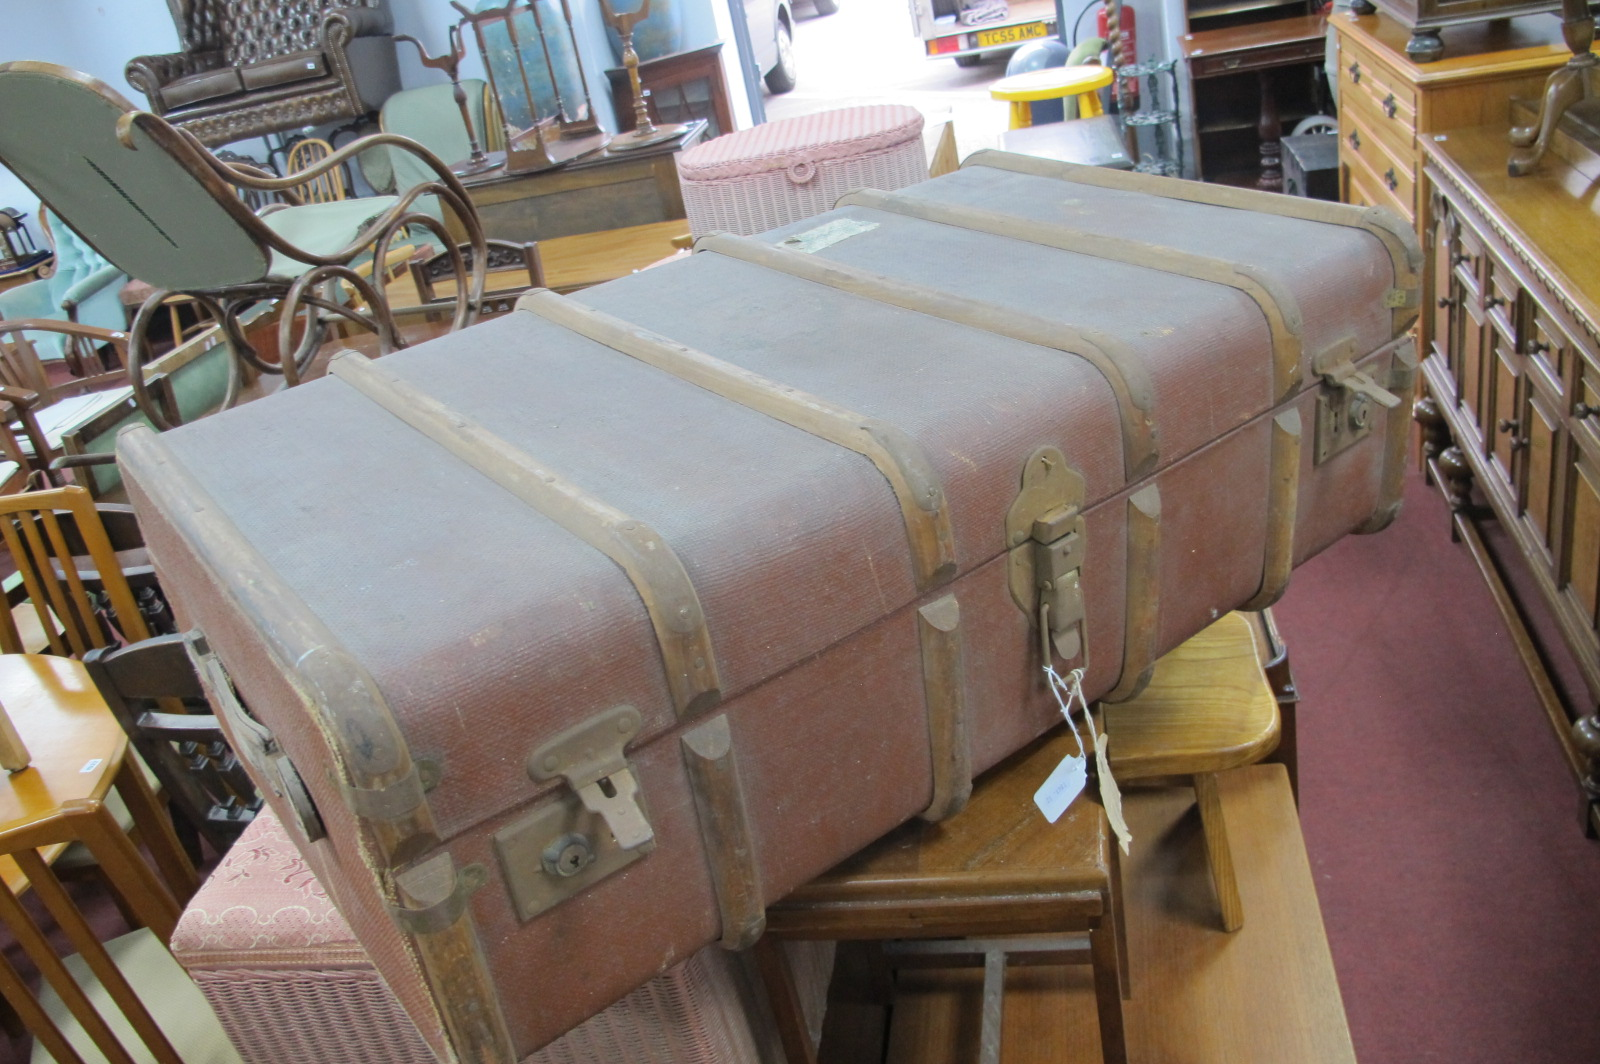 Vintage Wood Bound Steamer Trunk, with inner tray, bearing labels, including RAF Pilots label.